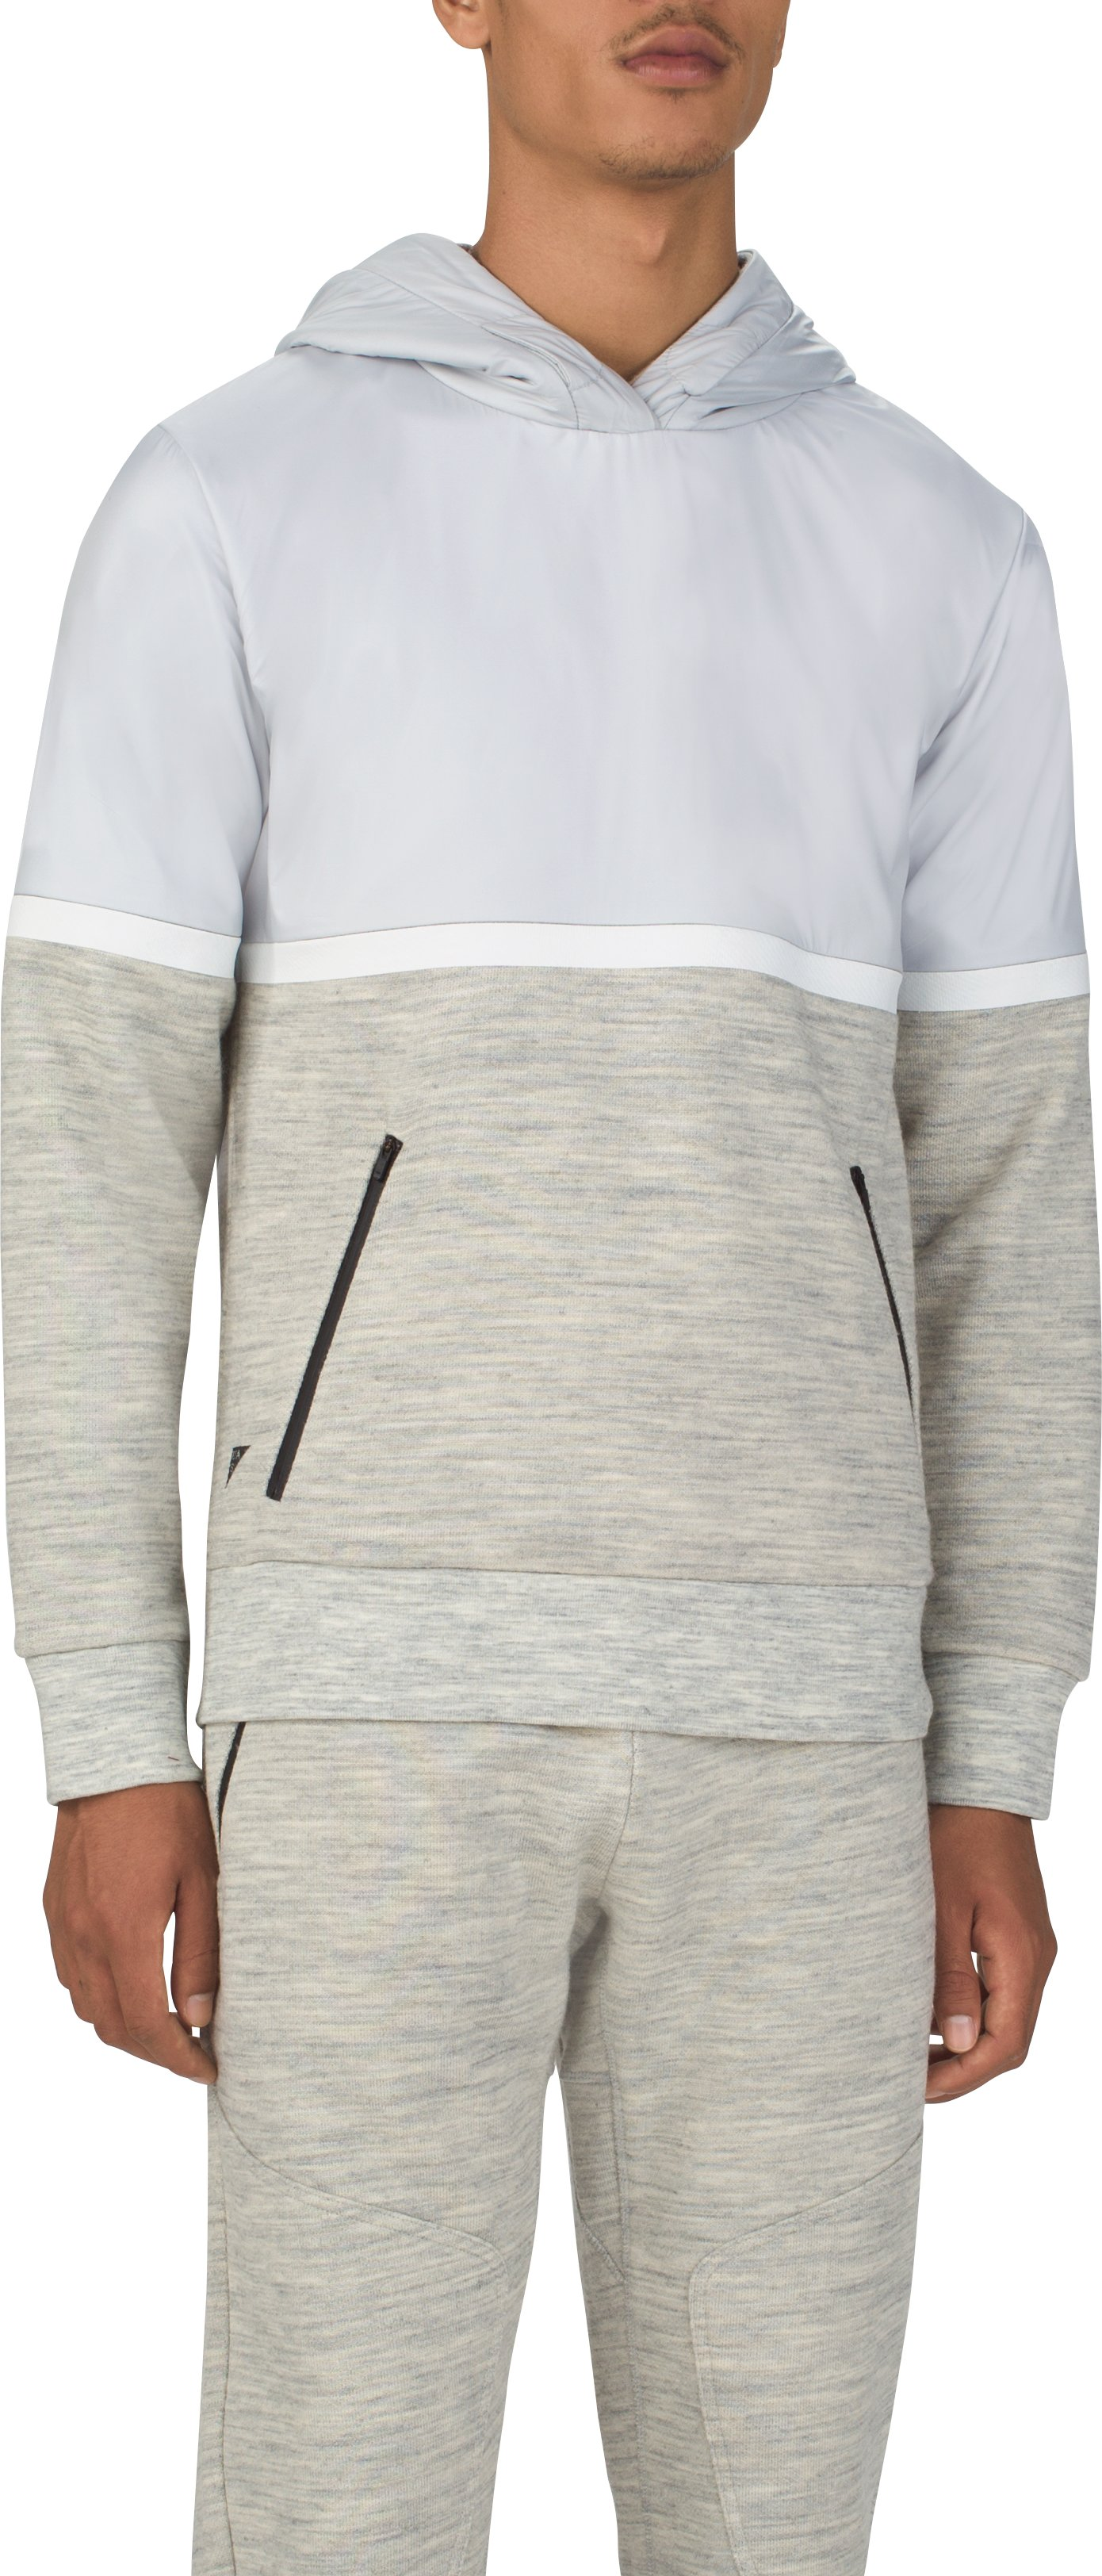 Men's UAS Pivot Terry Hoodie, Light Gray, undefined